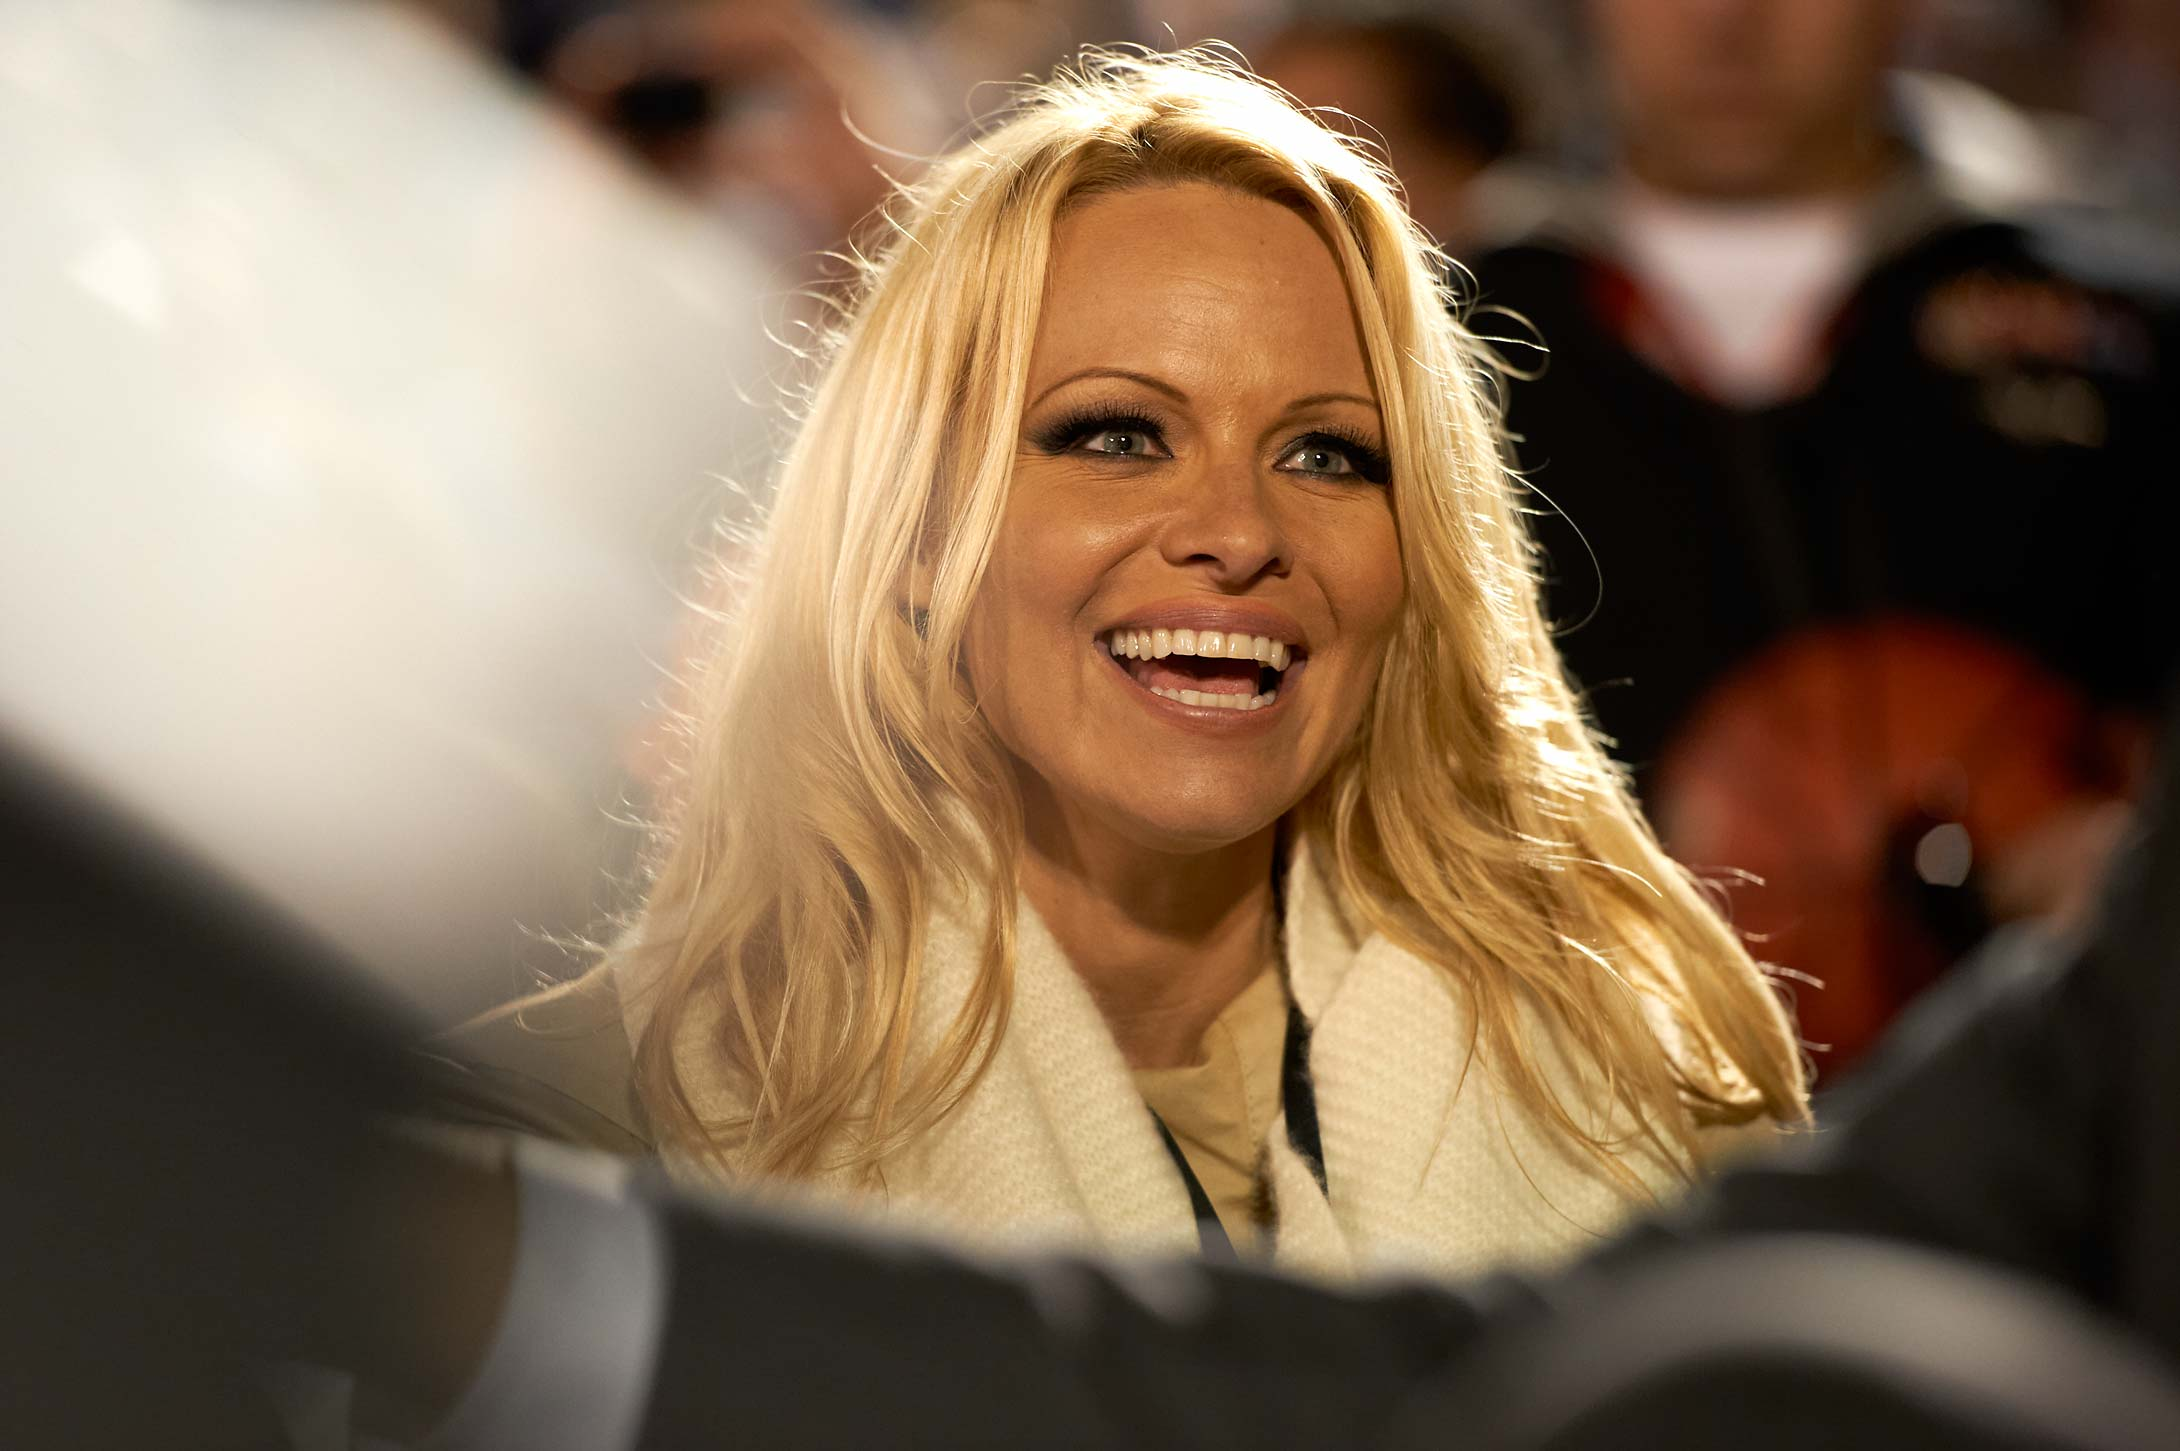 Pamela Anderson seated courtside at the 2011 game between Michigan State and North Carolina aboard the USS Carl Vinson (CVN-70) aircraft carrier docked in Naval Air Station North Island.